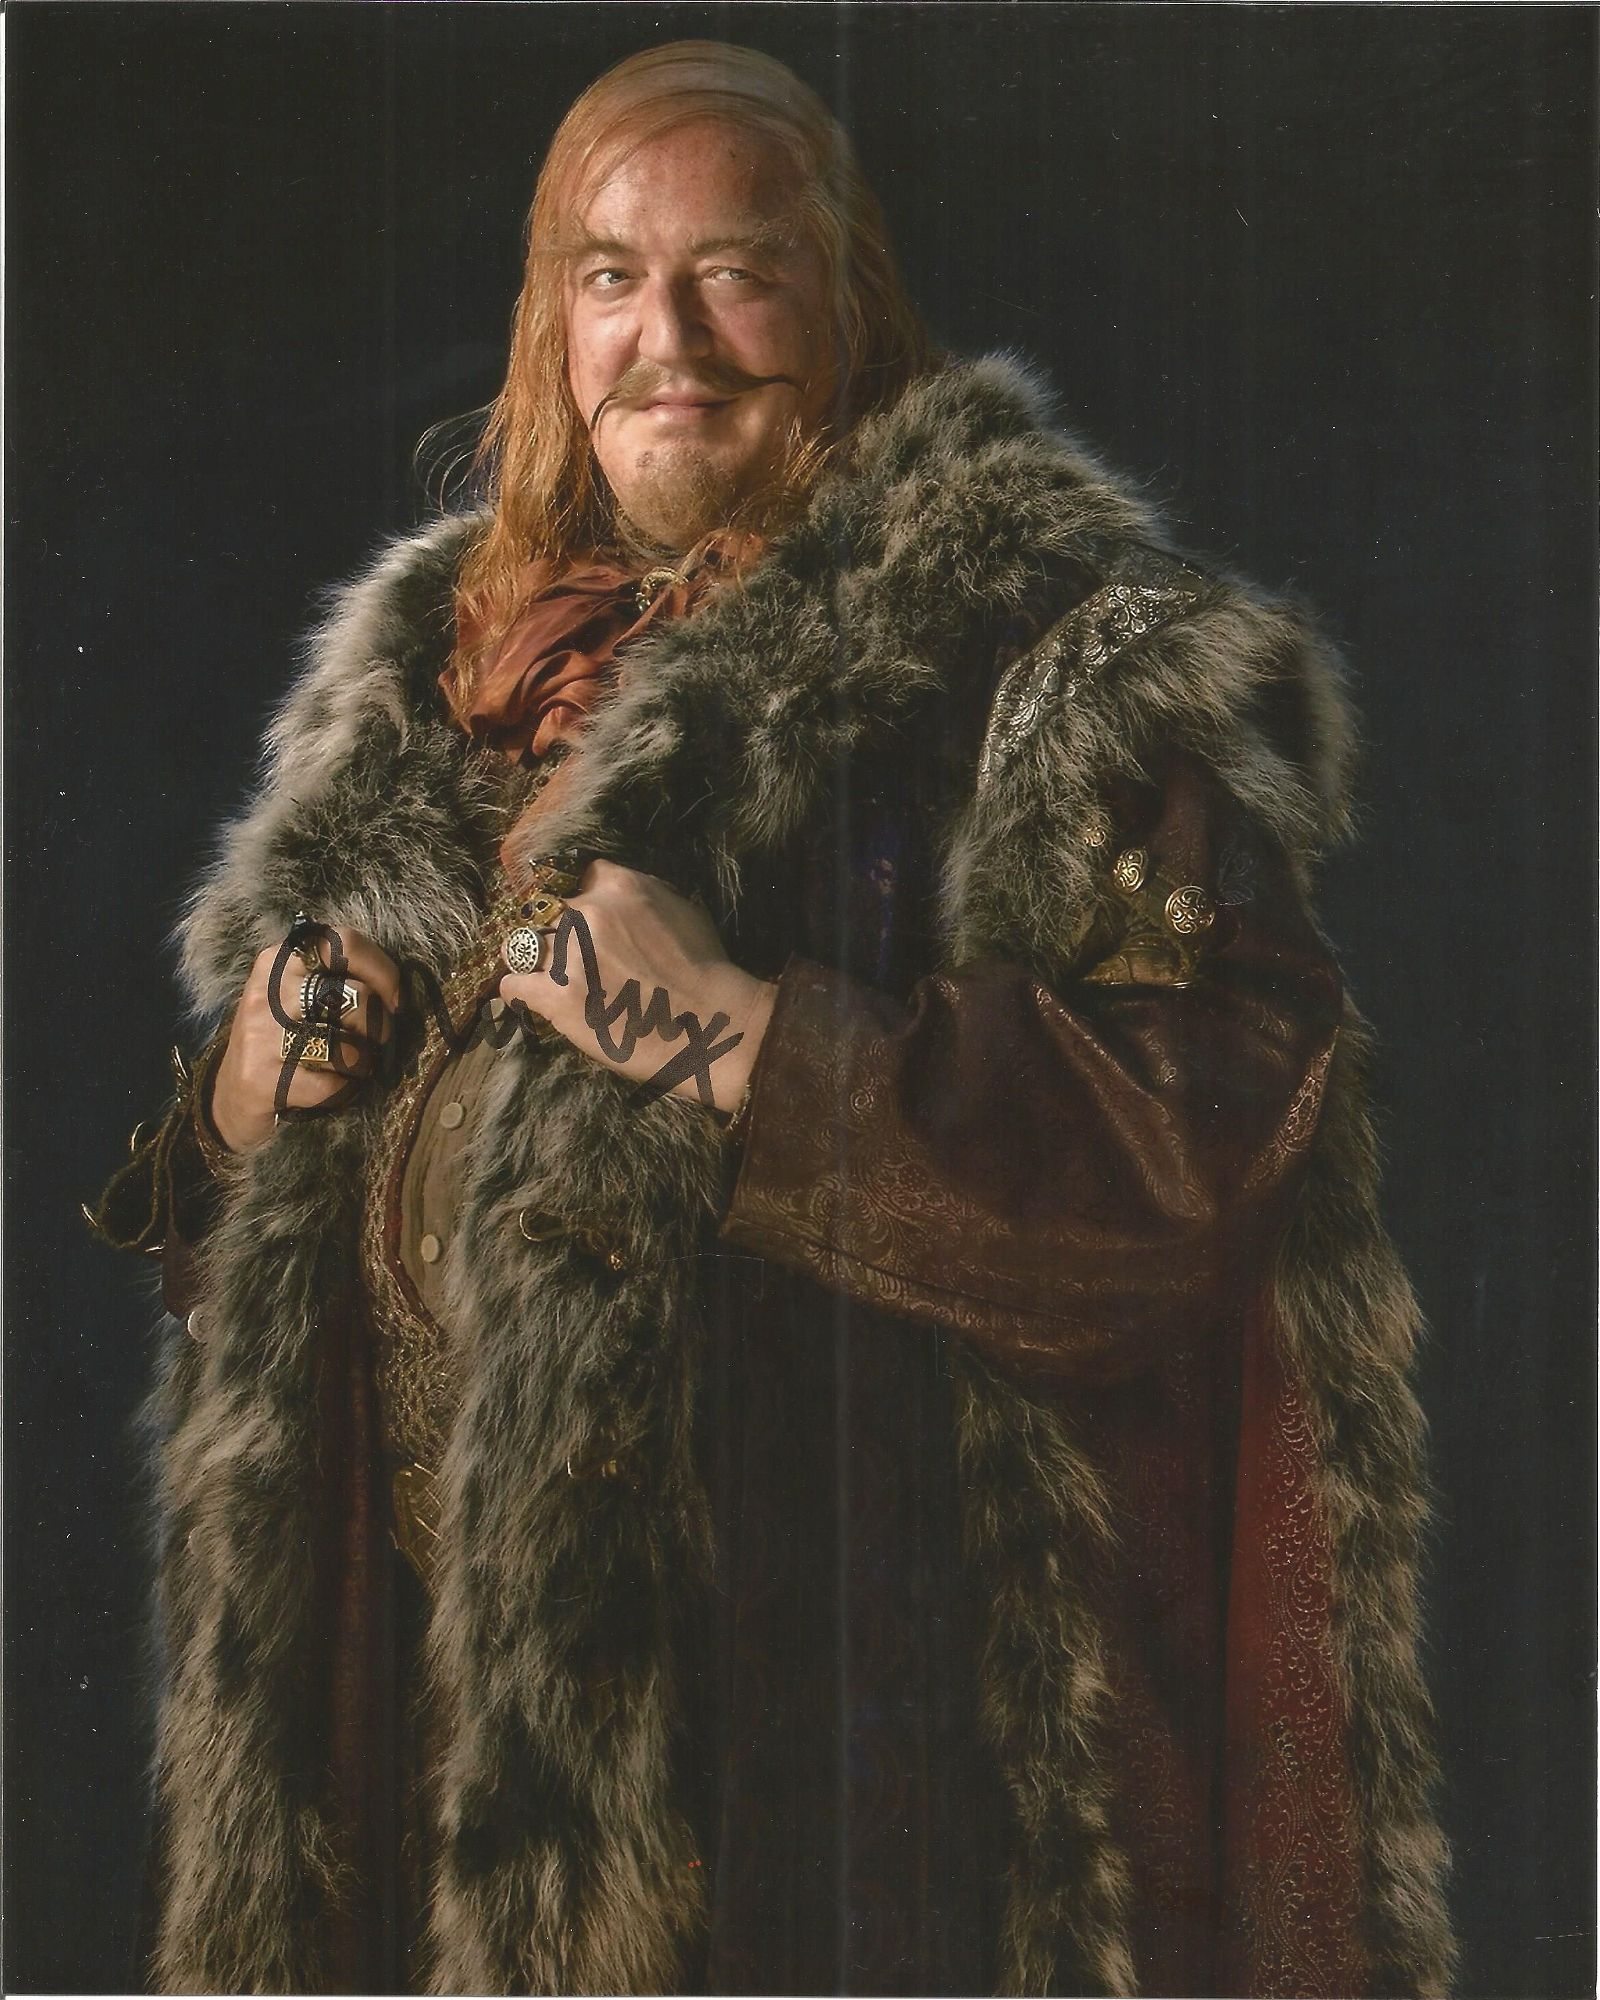 Stephen Fry signed 10x8 colour image from The Hobbit.